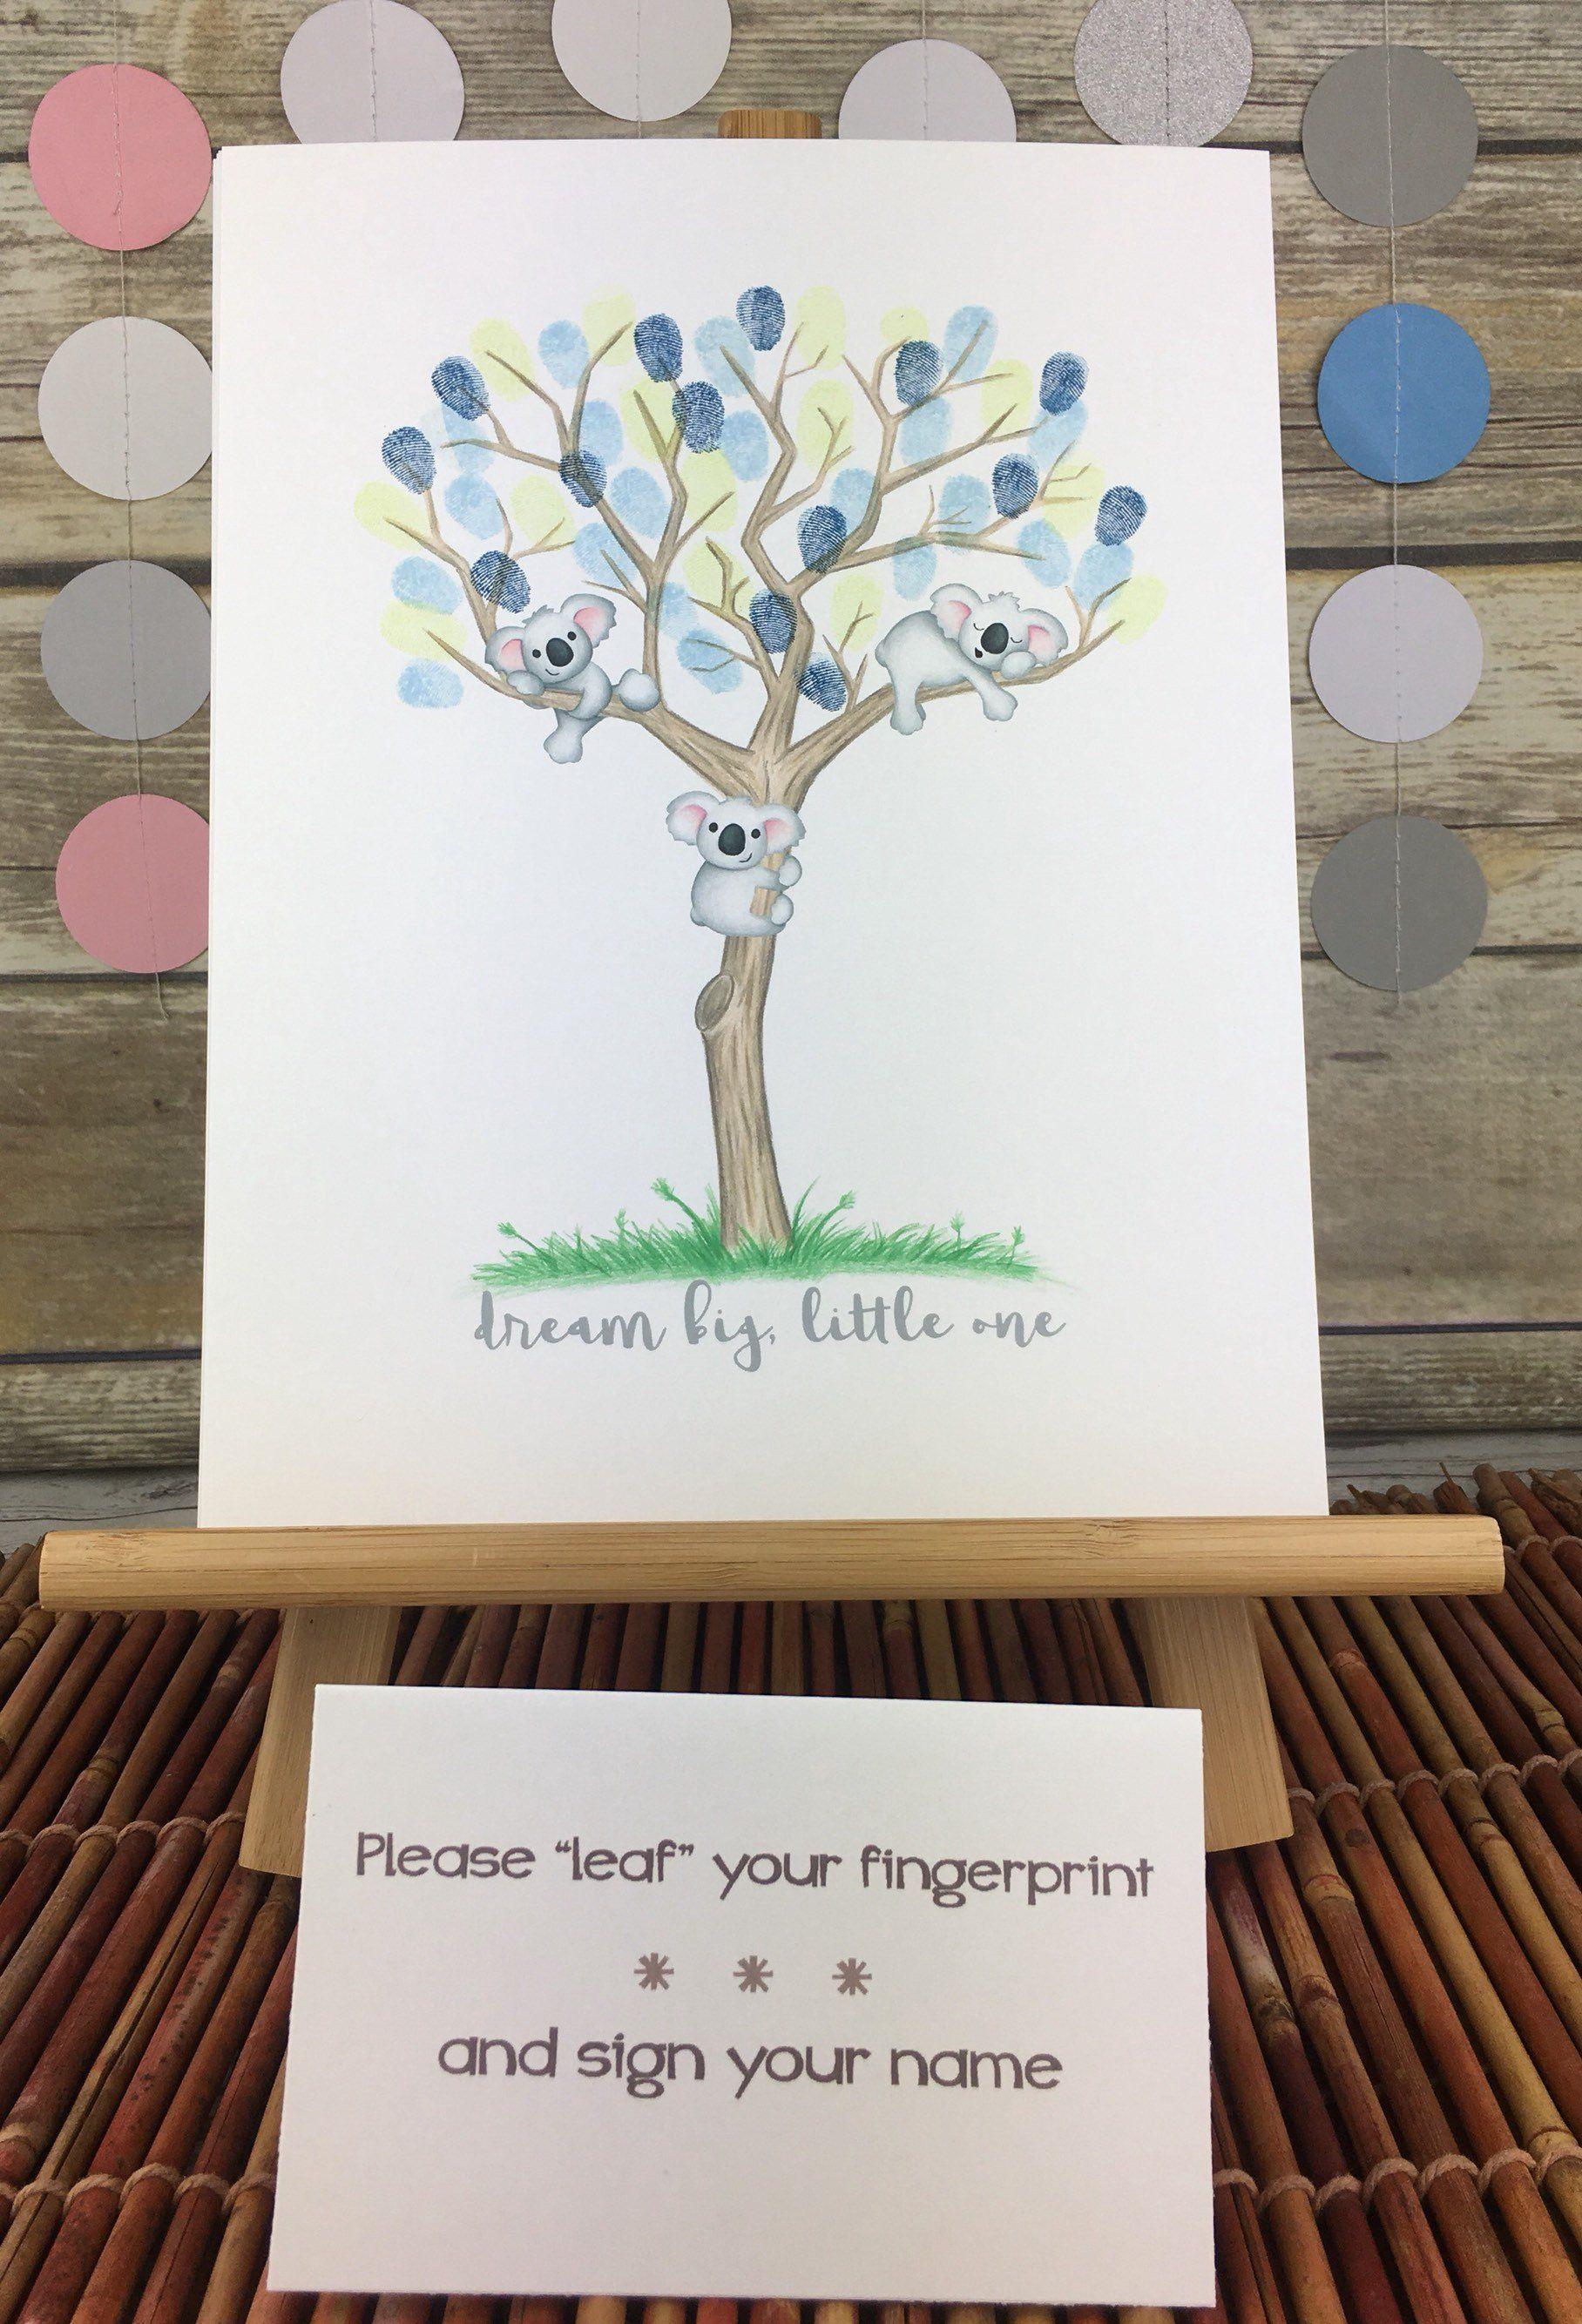 Koala Bear Themed Baby Shower : koala, themed, shower, Koala, Shower, Thumbprint, Guestbook, Alternative, Australian, Outback, Theme, Animal…, Baby,, Fingerprint,, Animal